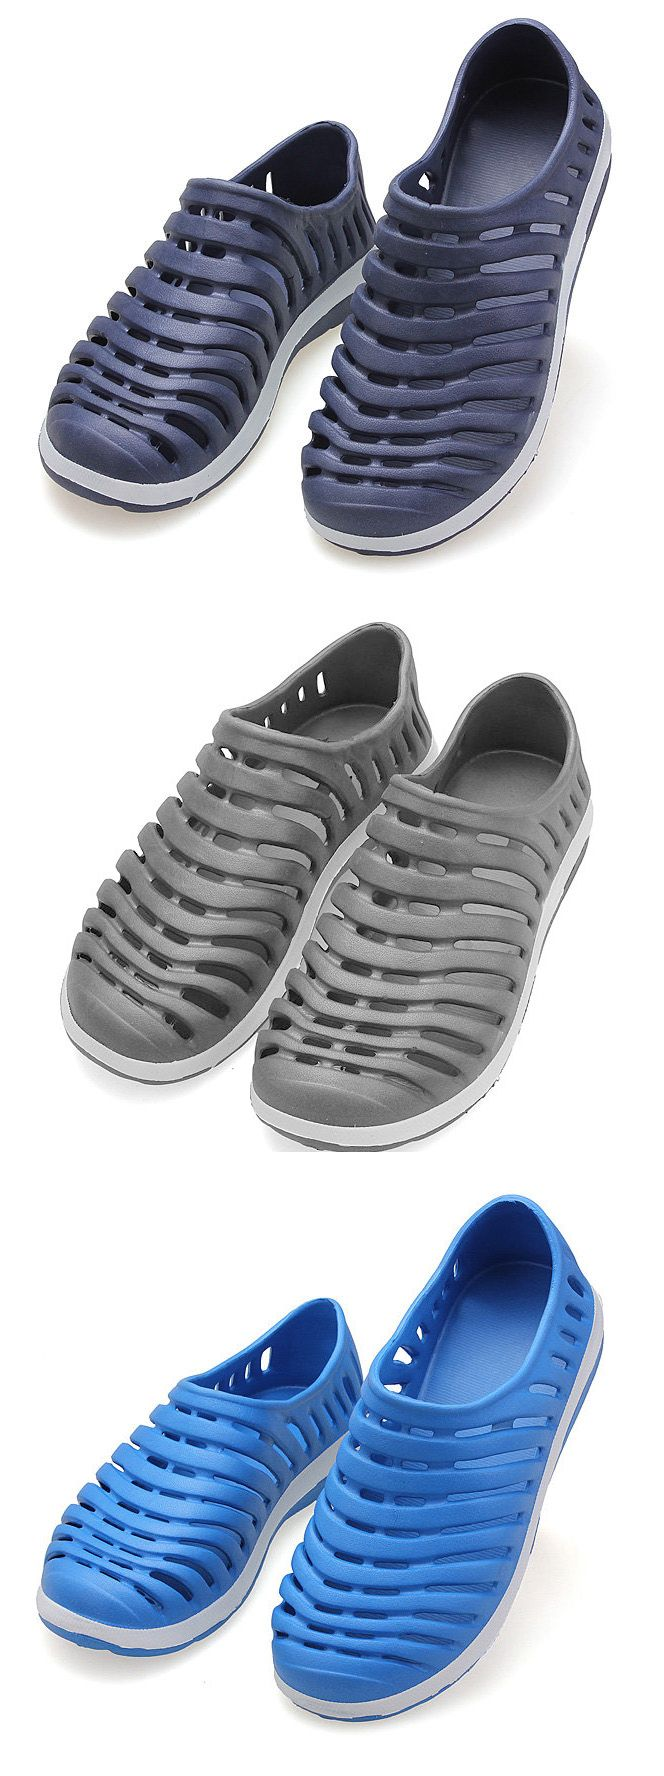 Men Pure Color Hollow Out Breathable Slip On Flat Beach Shoes